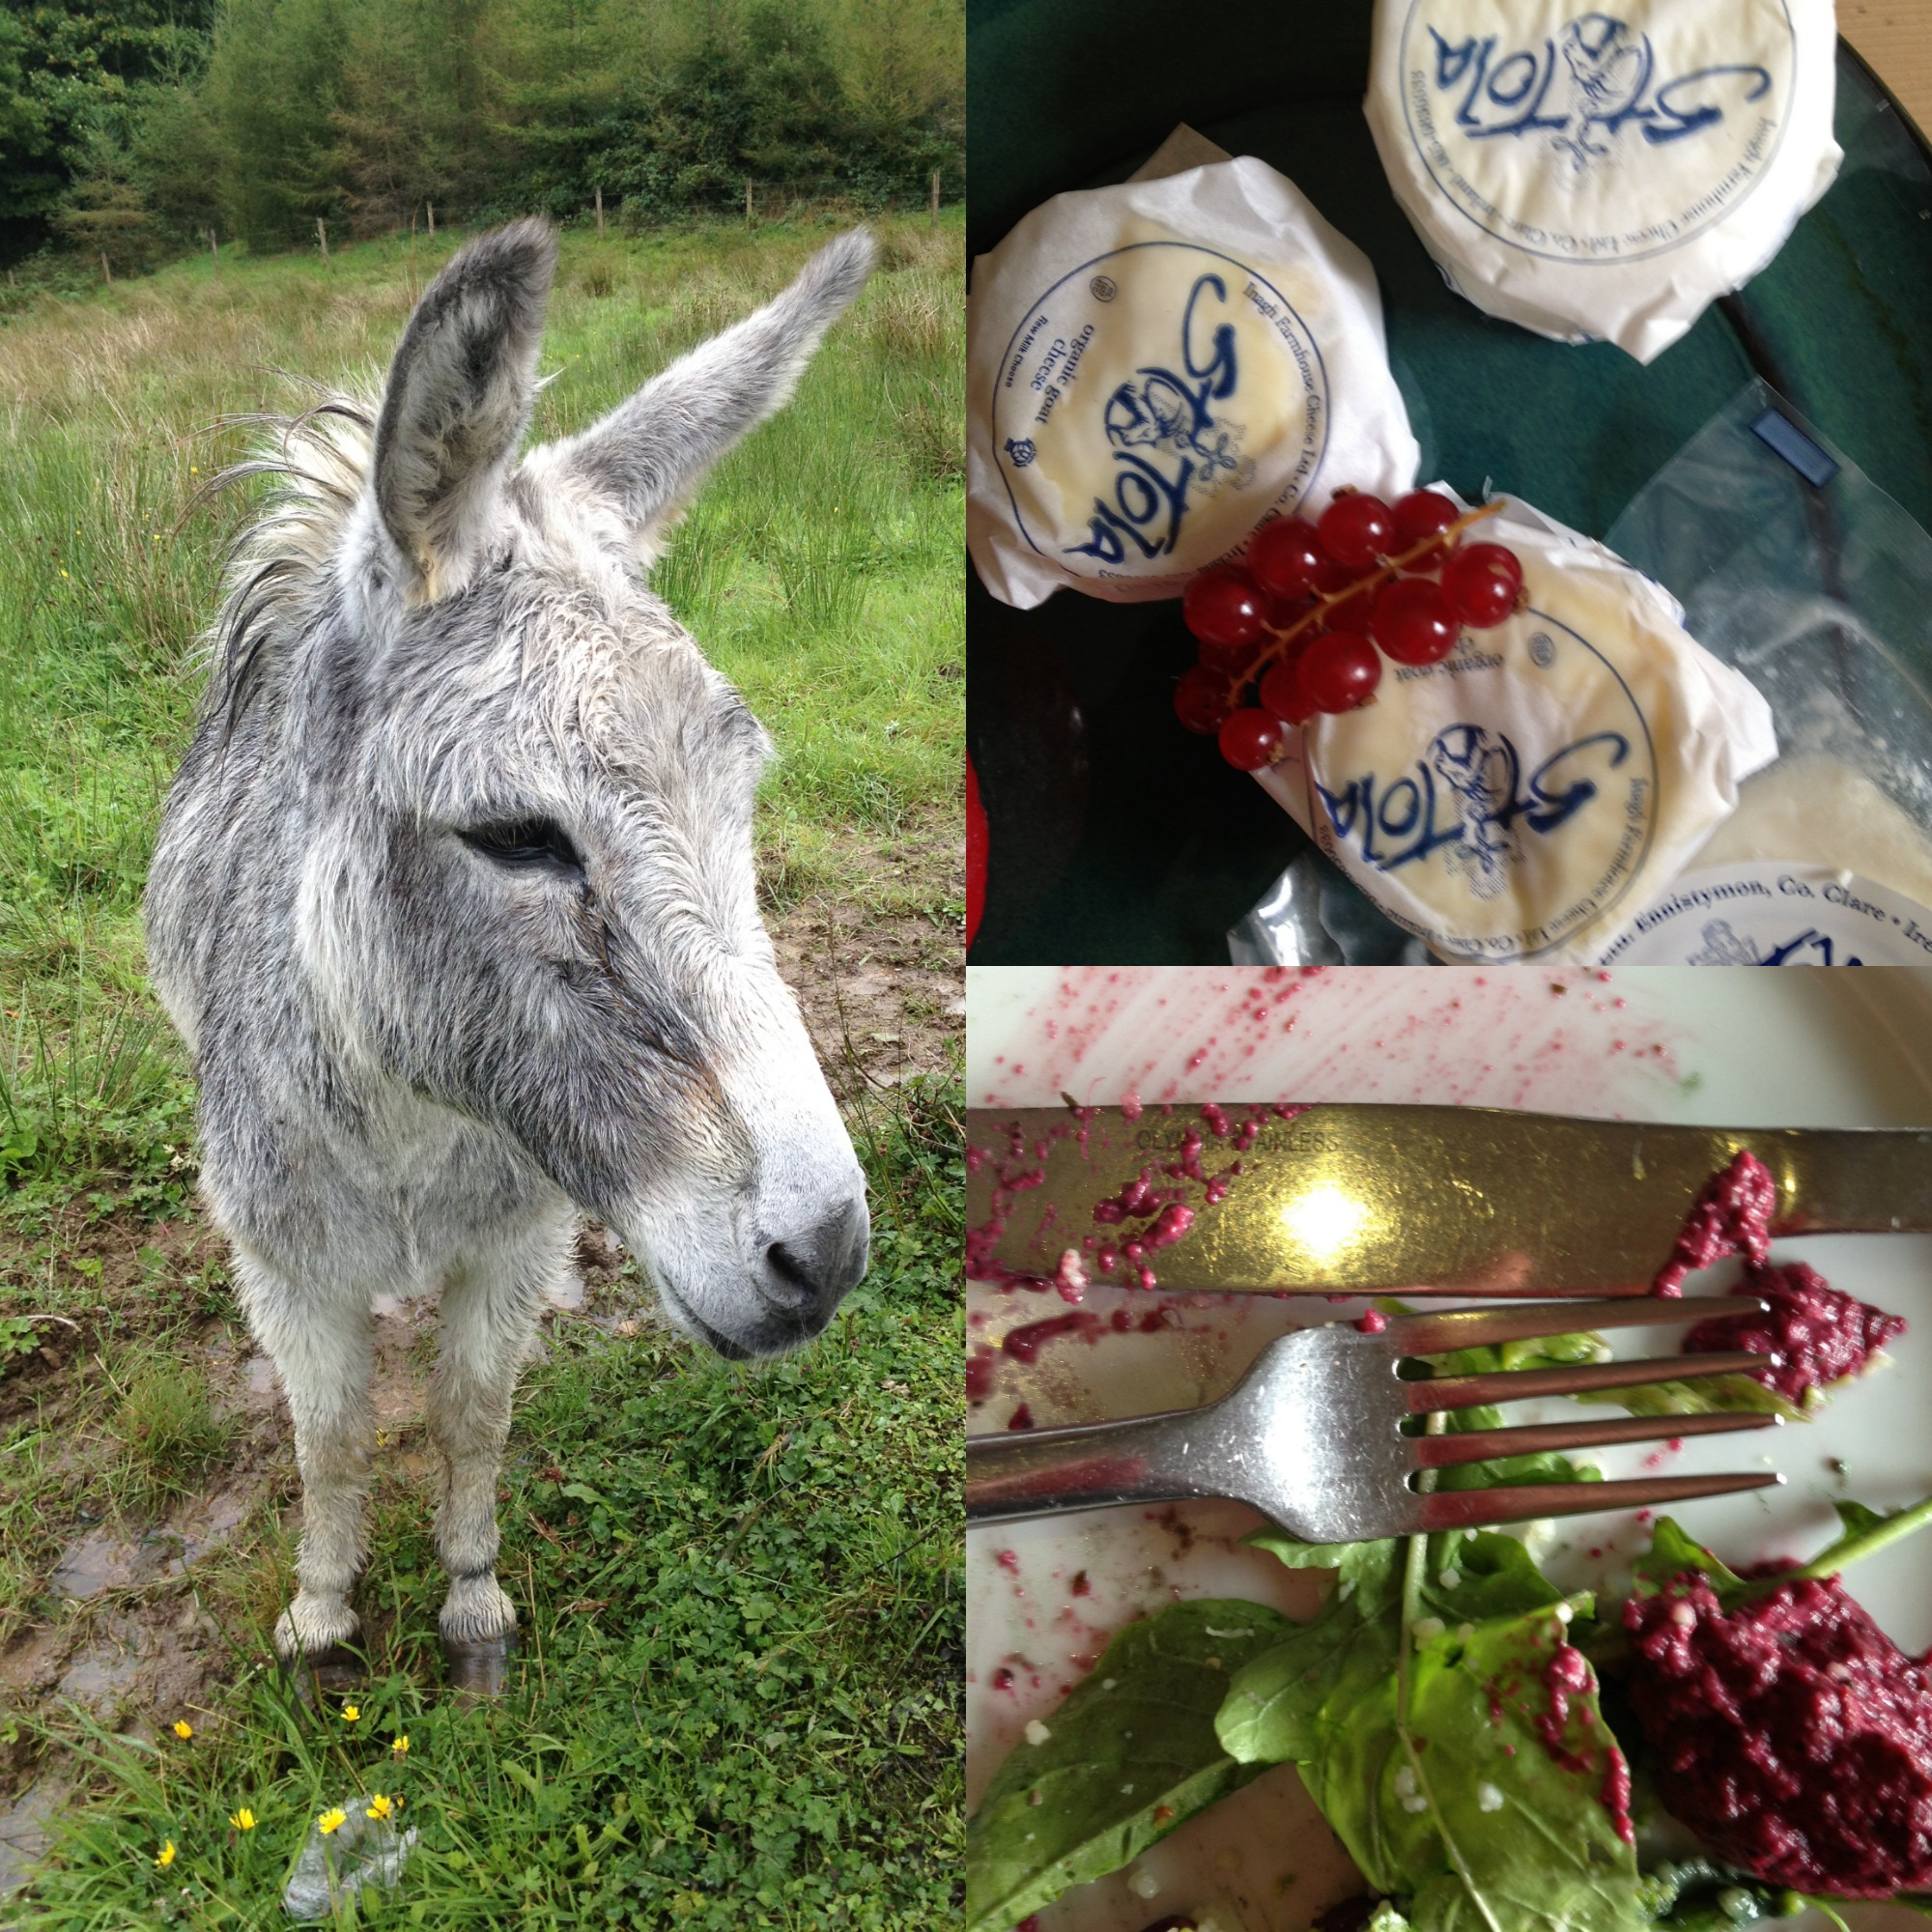 left: a donkey who wandered on the property, top right: at St. Tola's Organic Goat cheese farm, bottom right: our lunch.